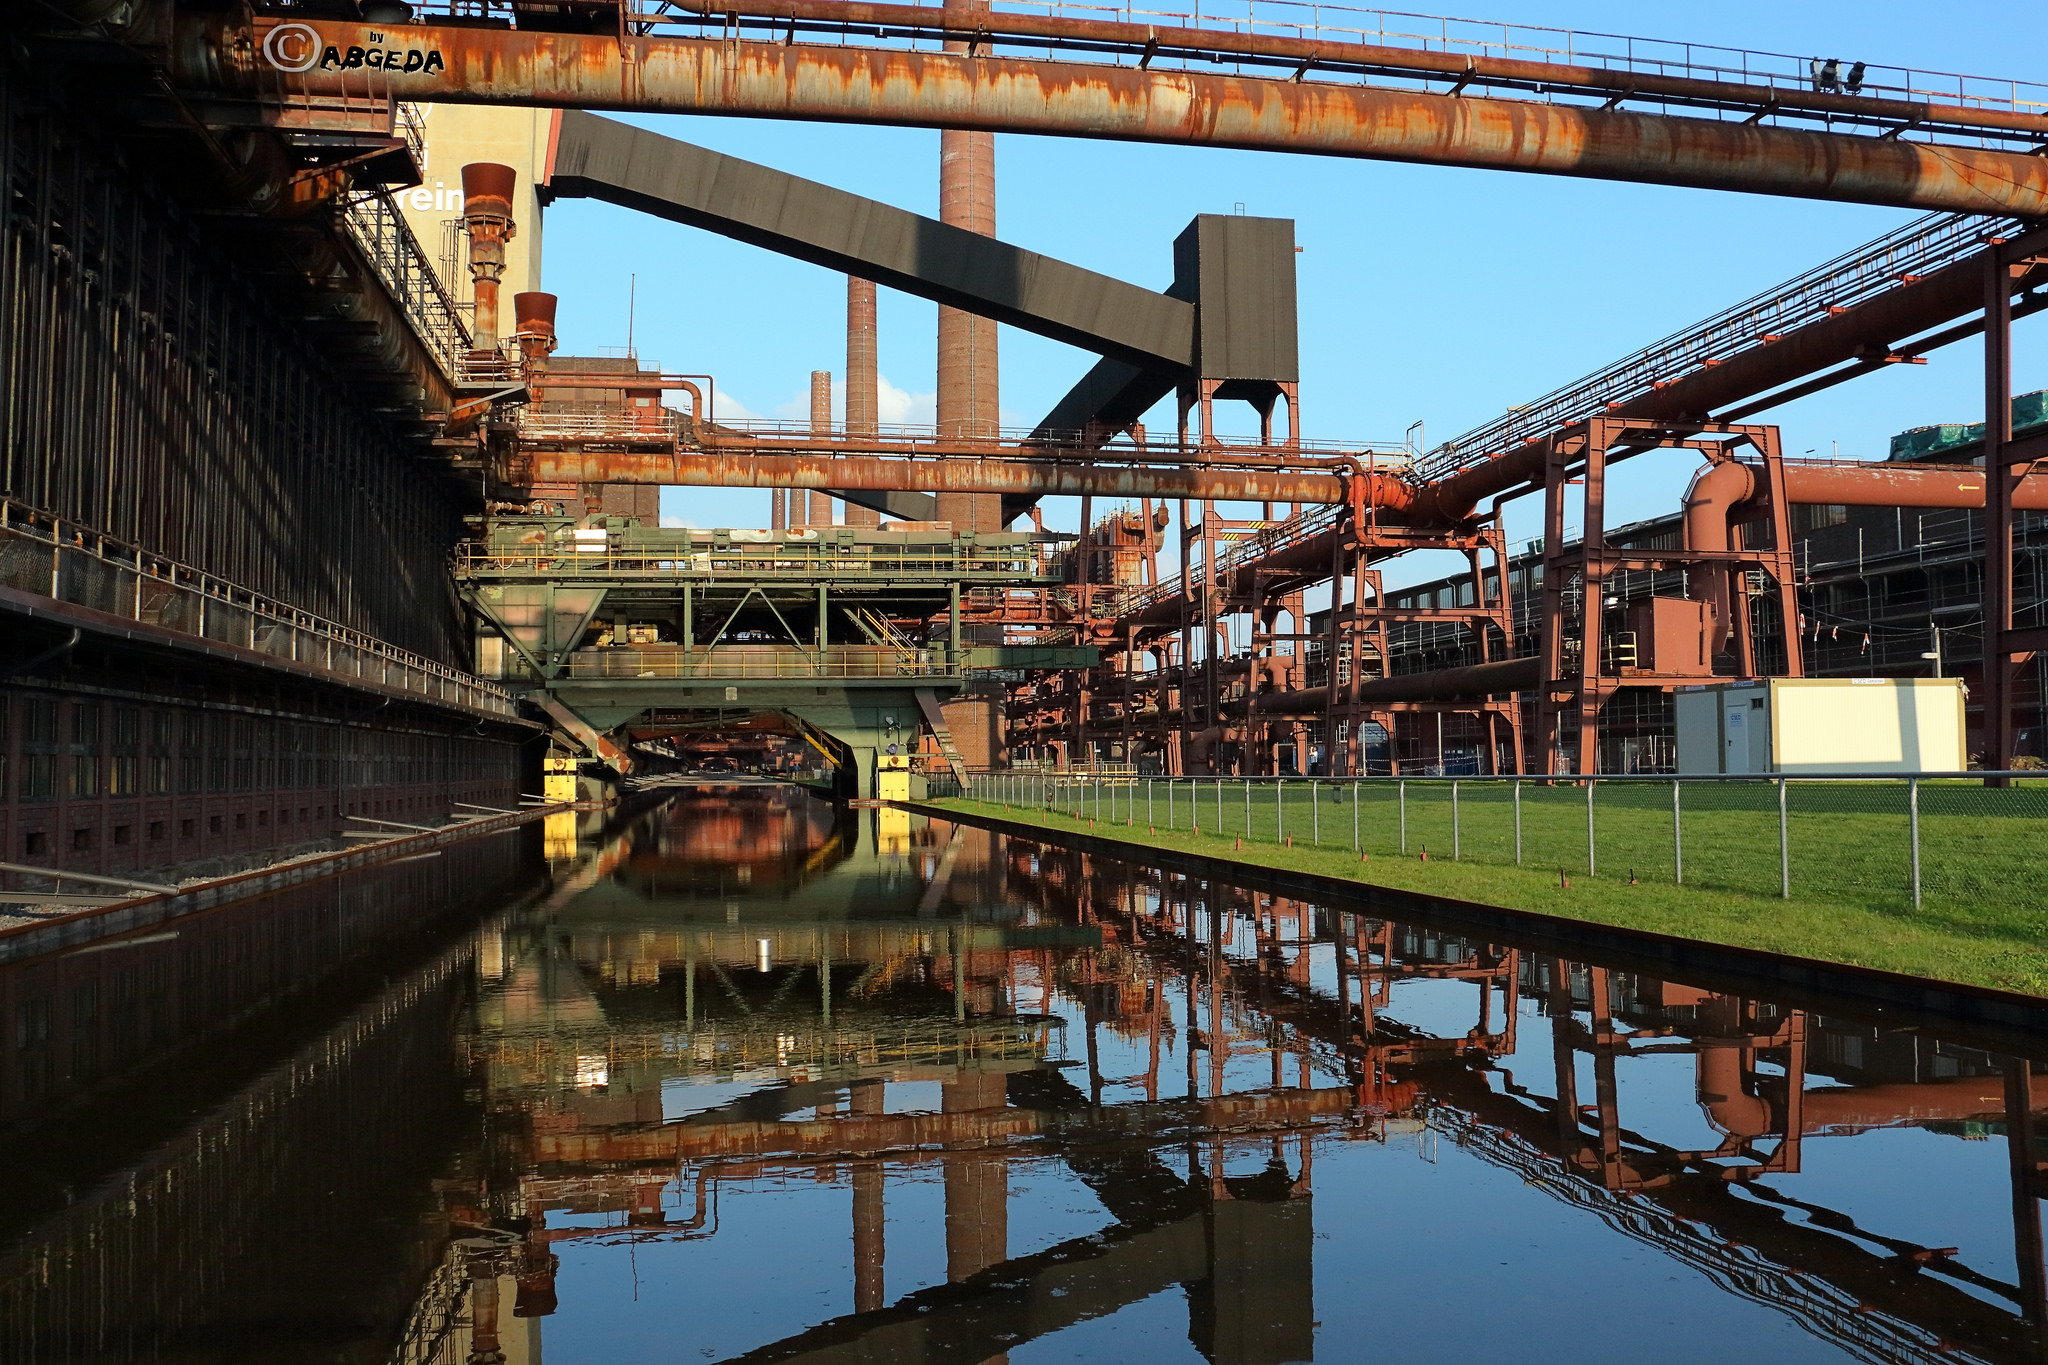 Zeche Zollverein, werelderfgoed. Foto: Abgeda, via Flickr